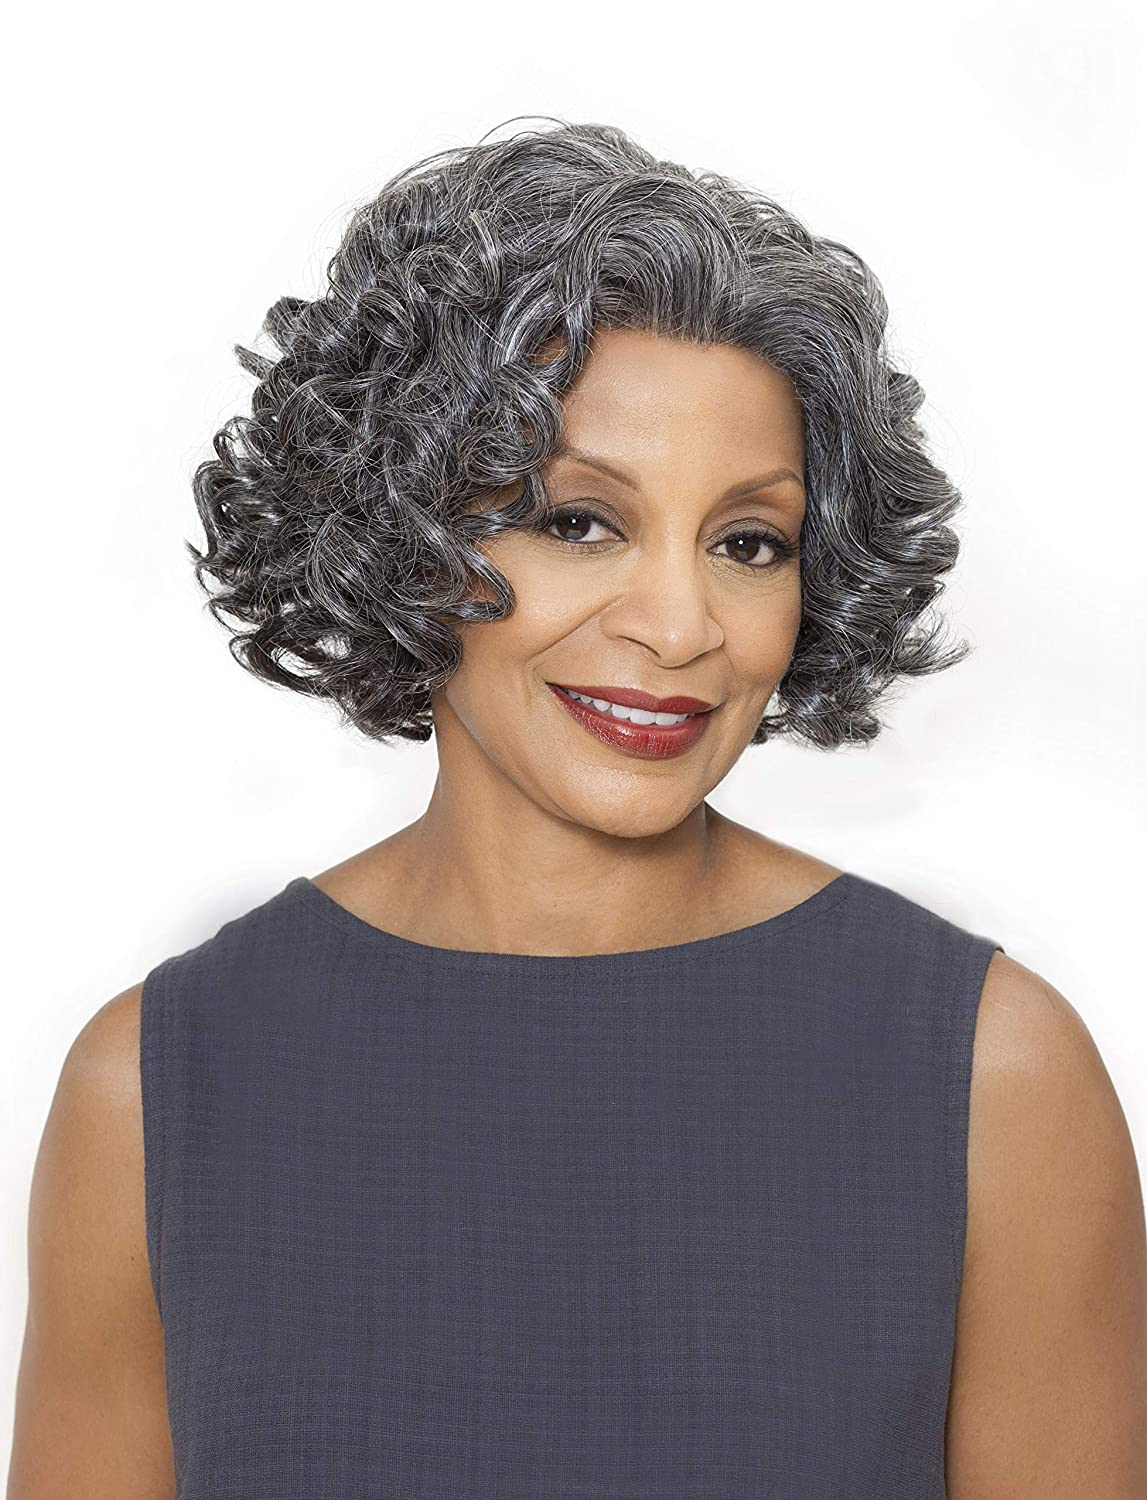 Foxy Finally popular brand Indefinitely Silver Yvonne - Synthetic Front in 3T44 Lace Wig